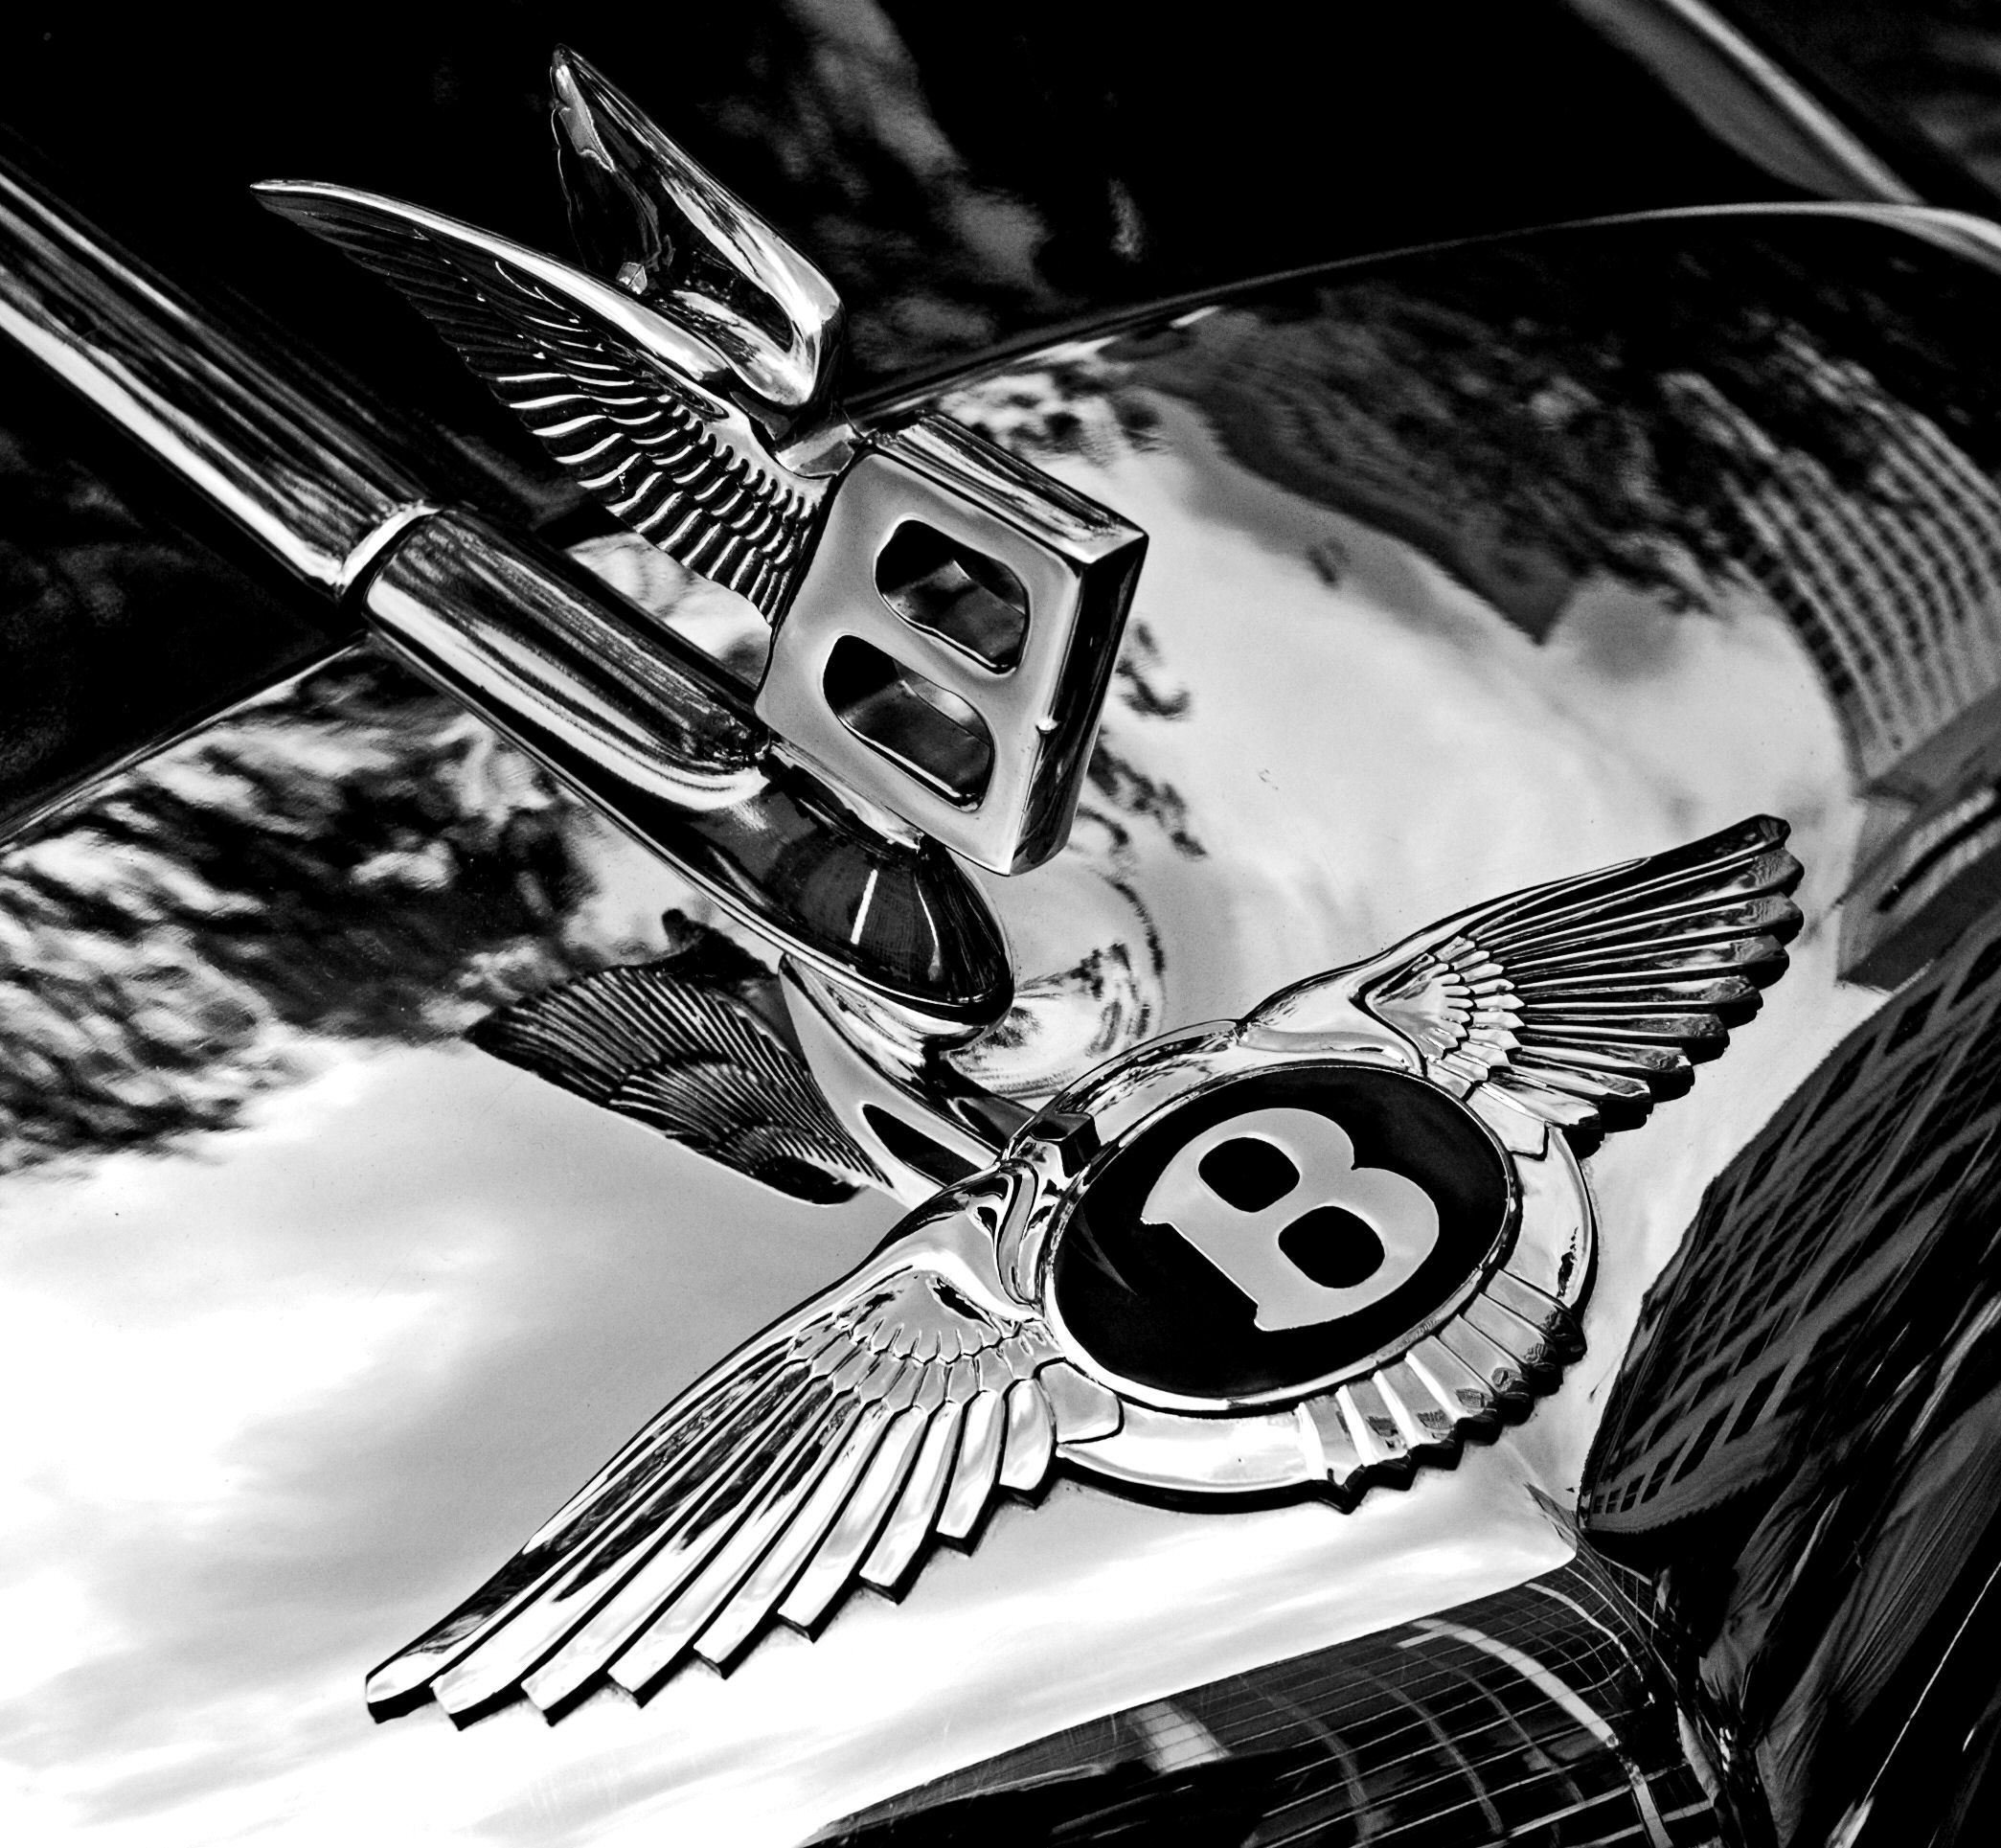 New File Bentley Badge And Hood Ornament Bw Jpg Wikipedia On This Month